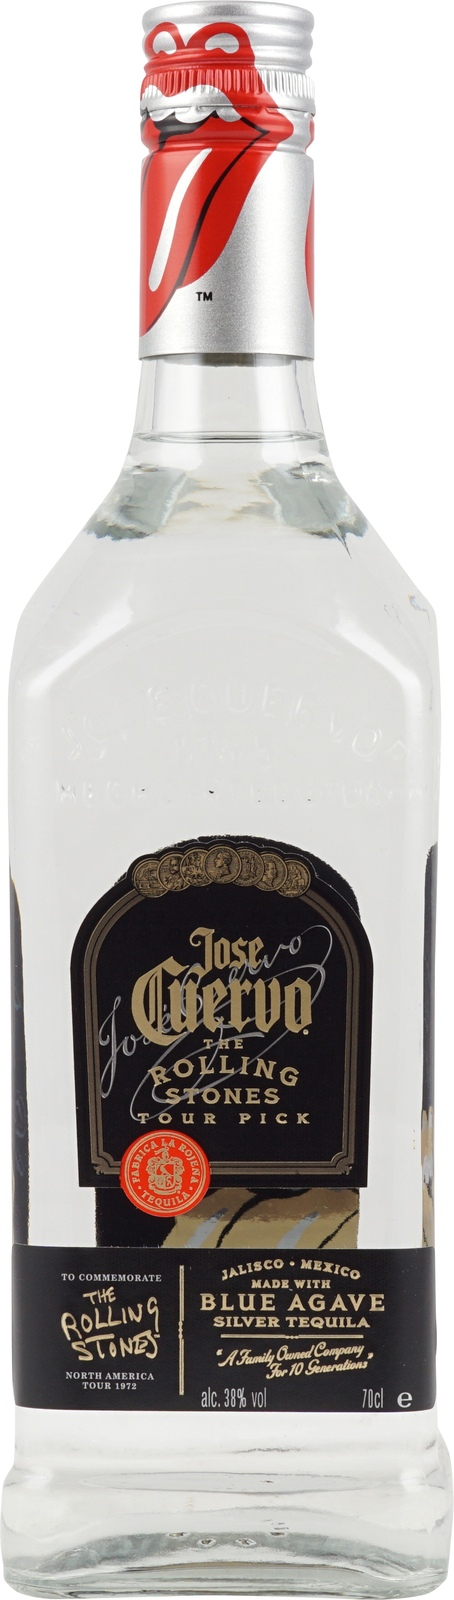 what do you mix with jose cuervo silver